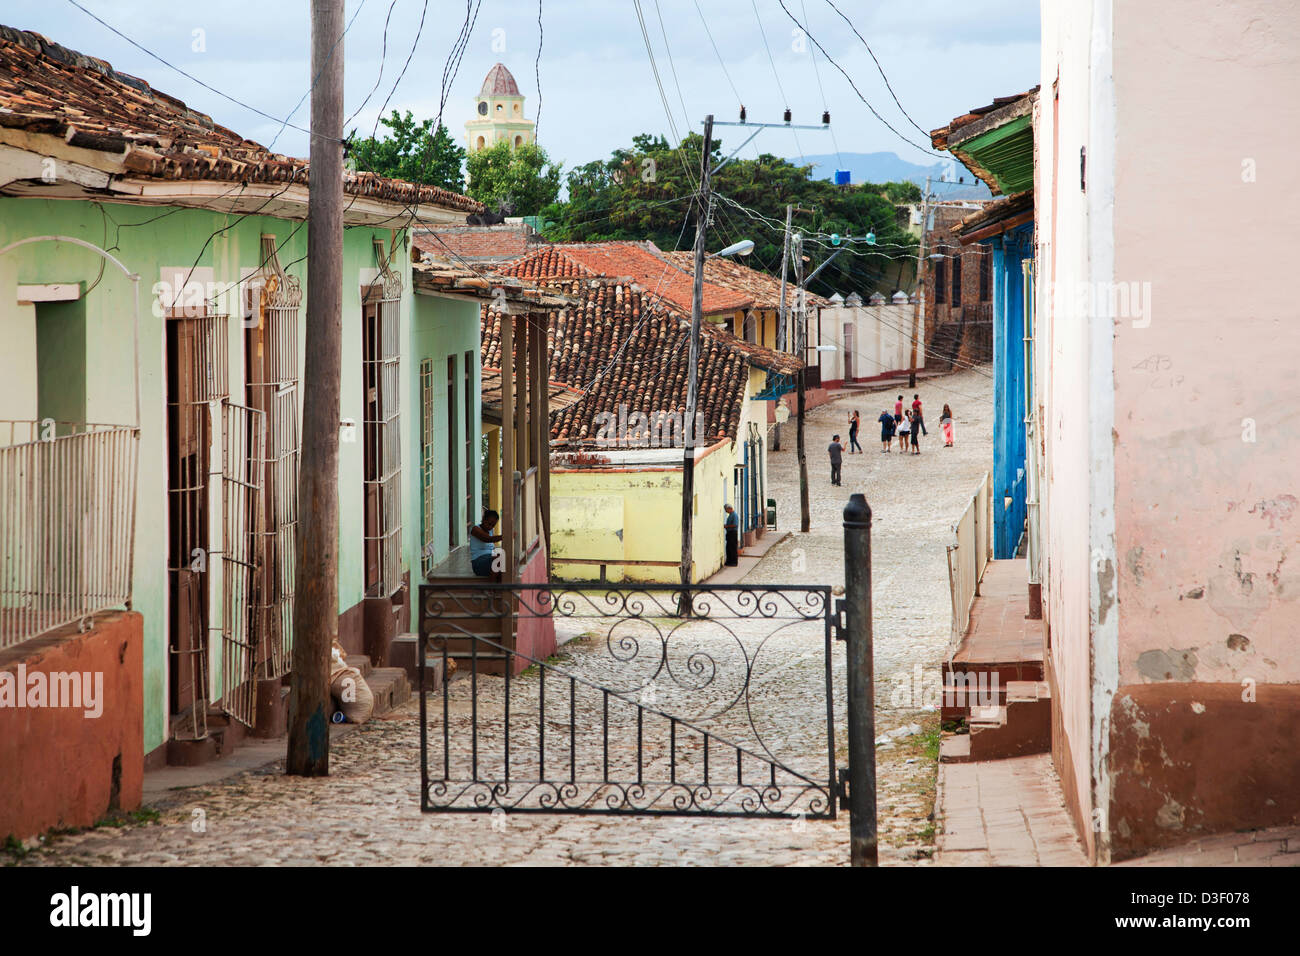 Colonial street with pastel coloured houses in the center of Trinidad, Cuba - Stock Image